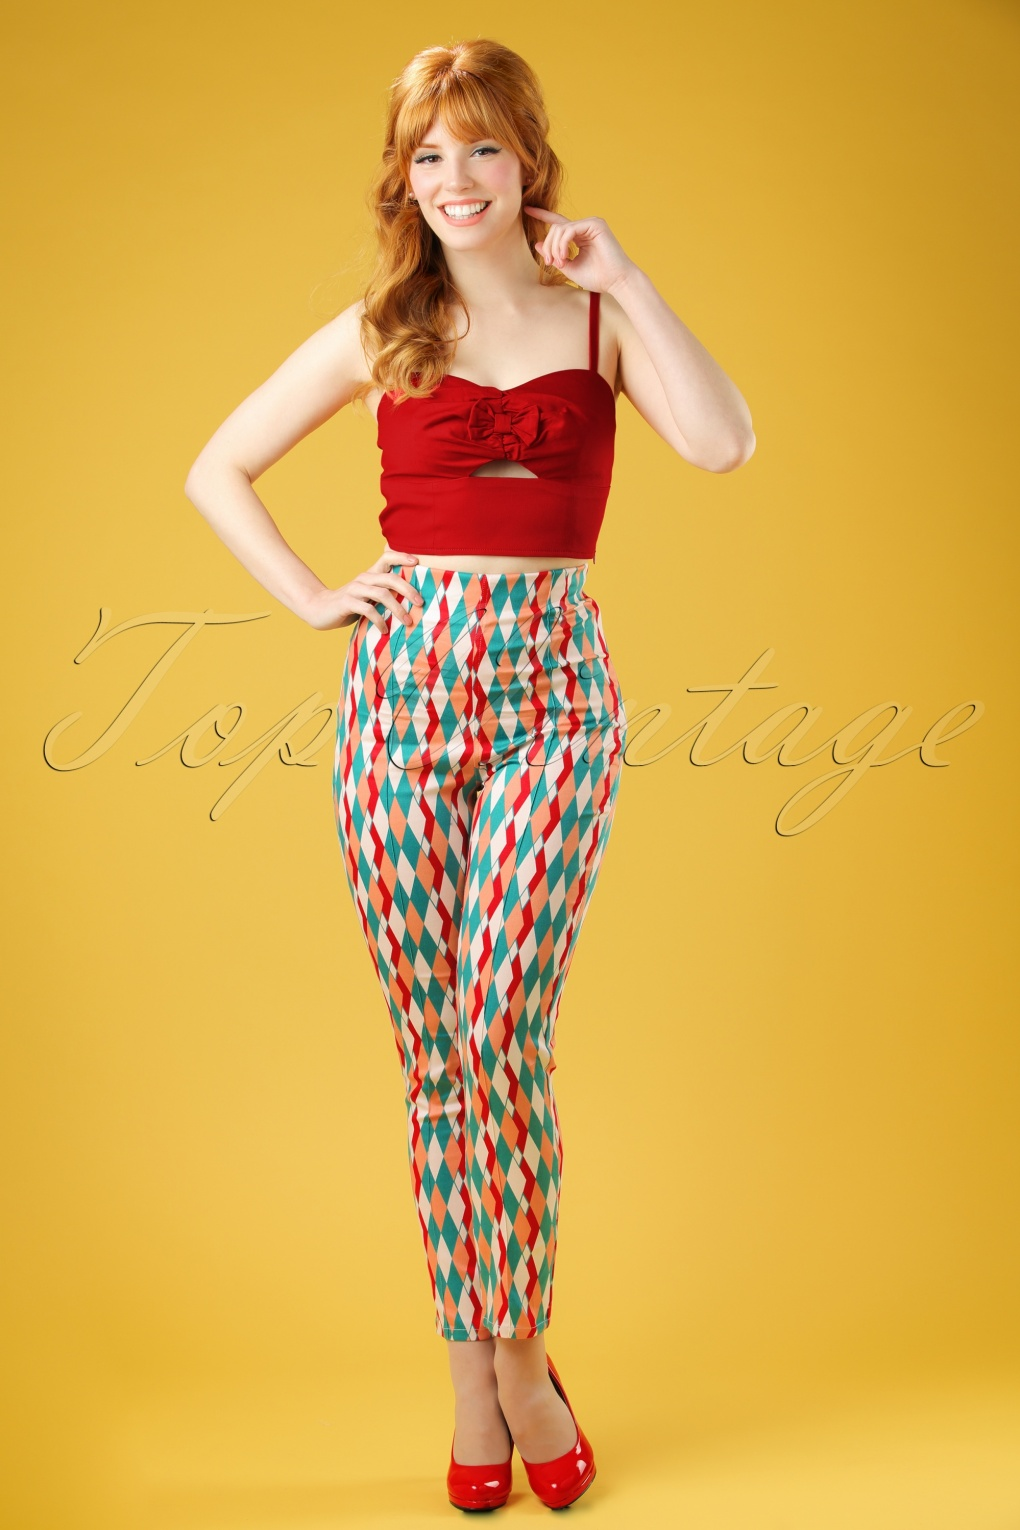 110266 Collectif Clothing Bonnie Atomic Harlequin Pants 20655 20161201 0007W full women's 1960s style pants, capri, jeans,Womens Clothing 1960s